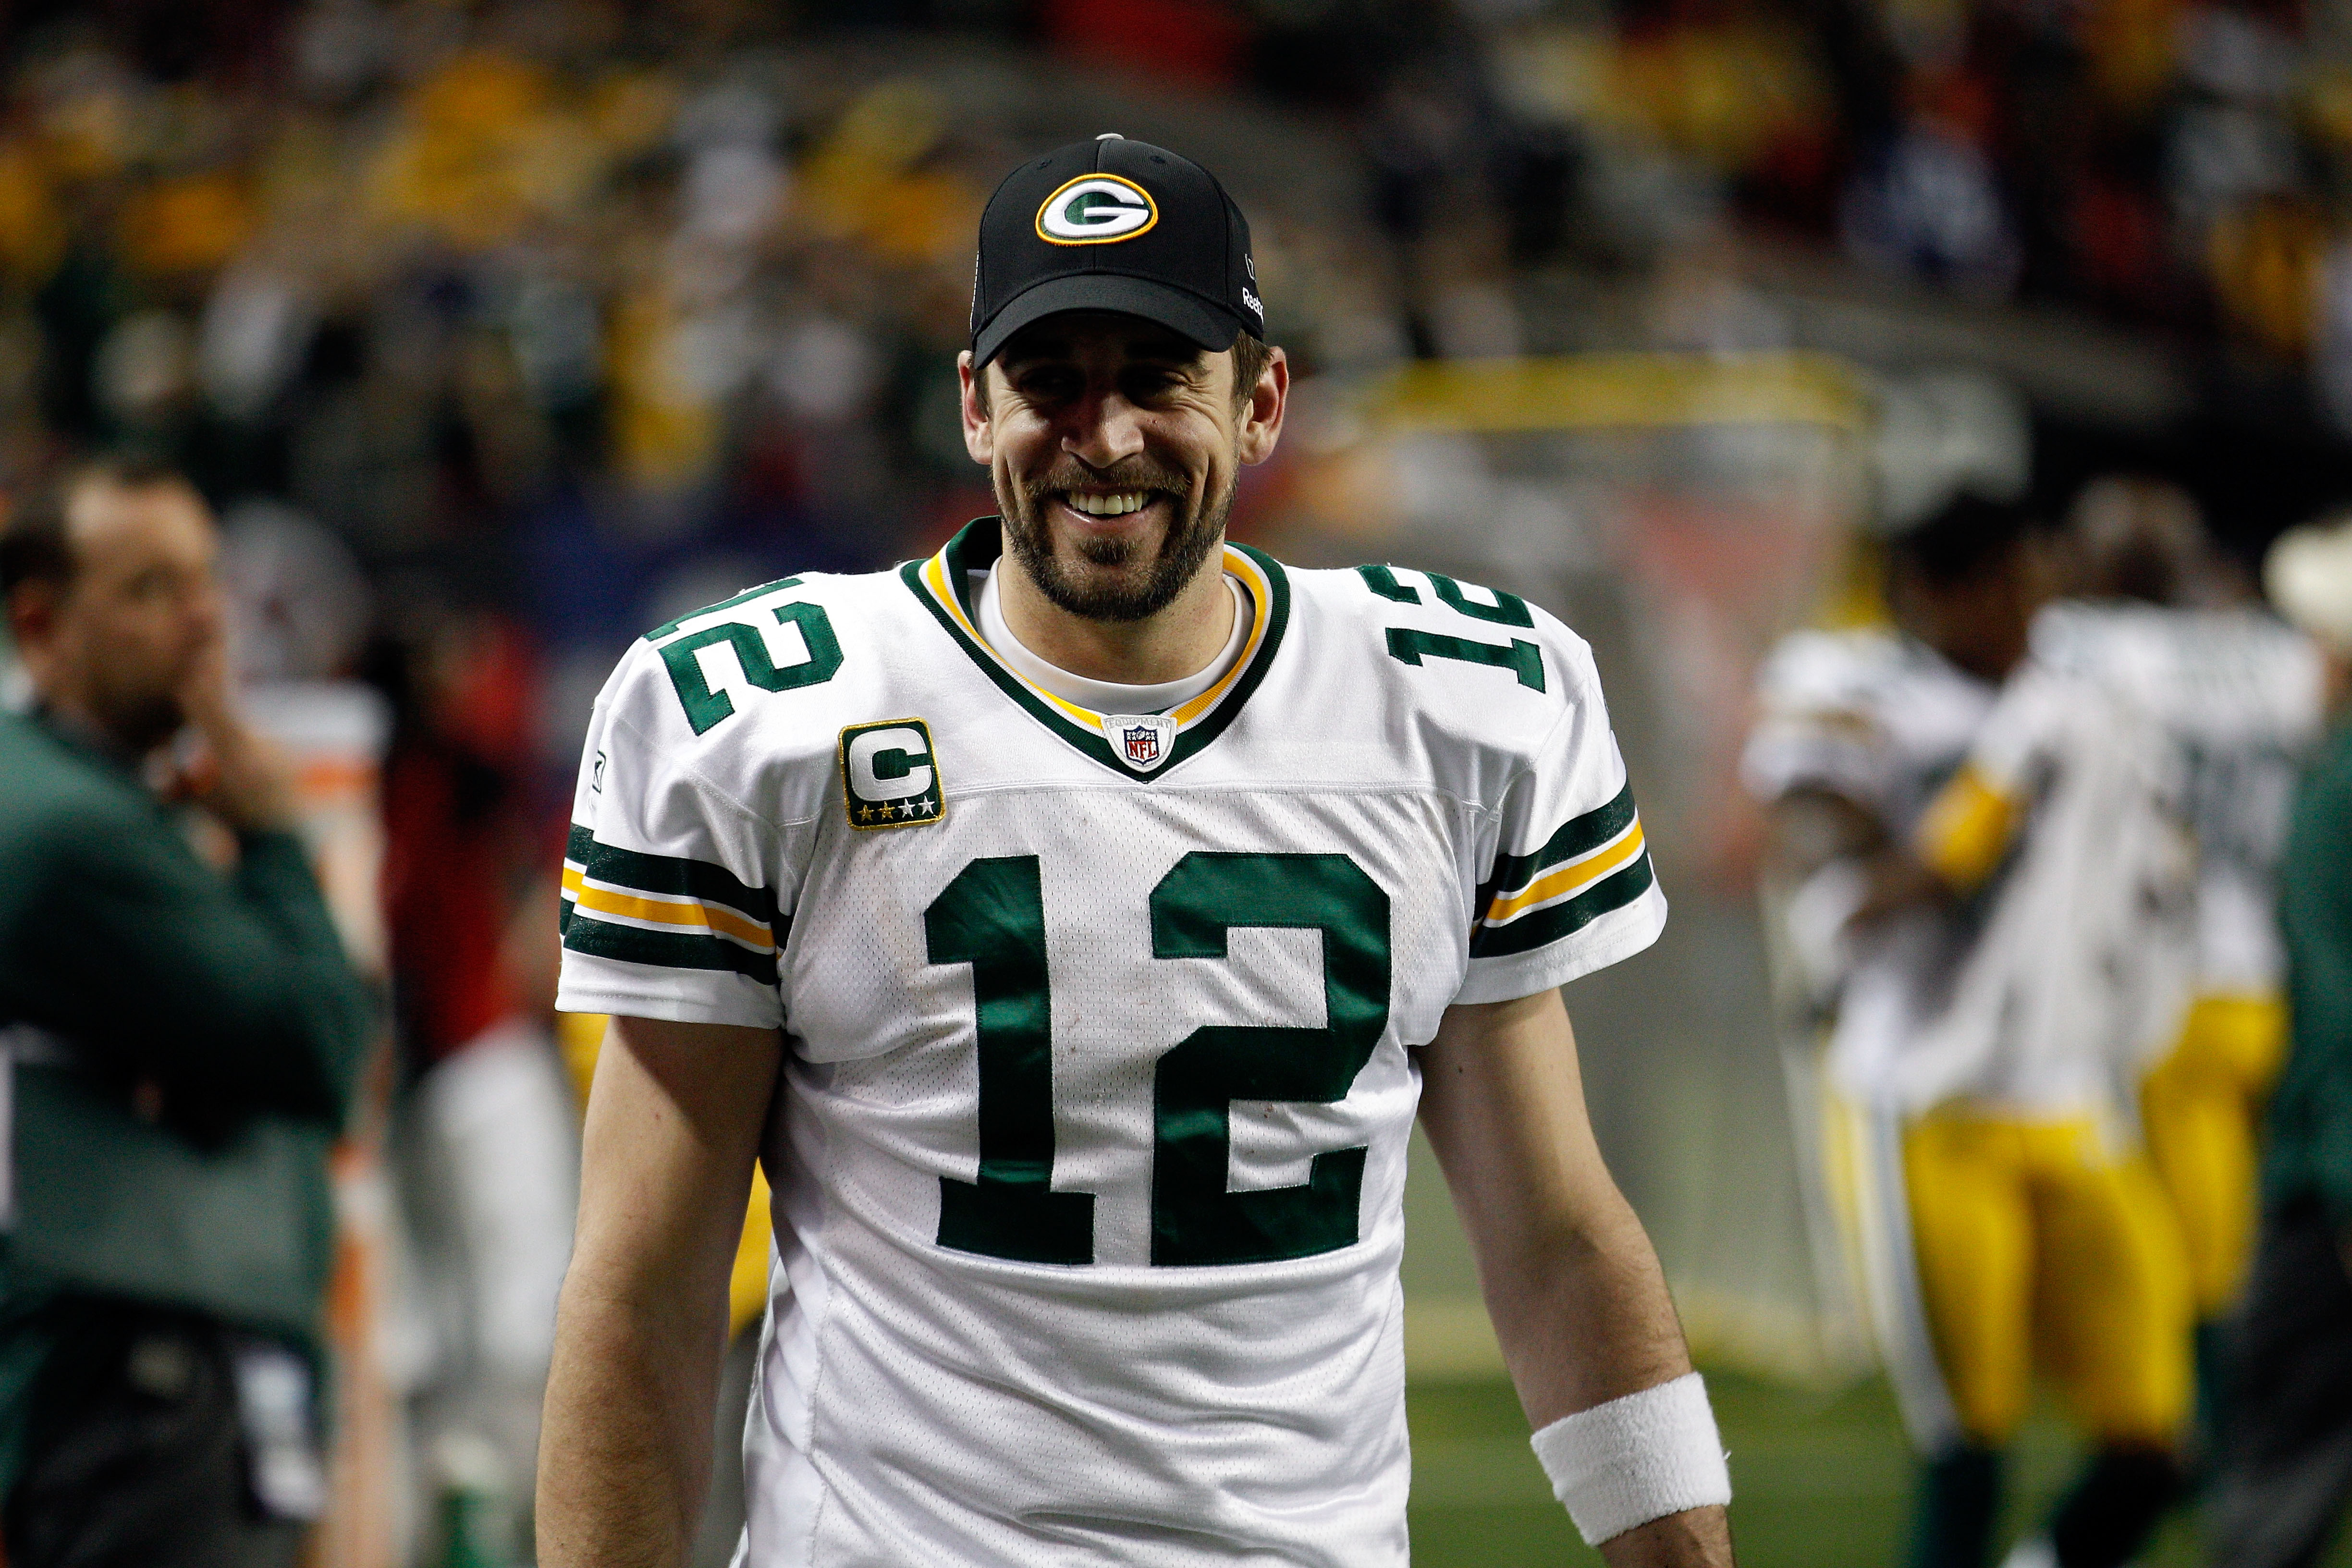 Rodgers will be all smiles after a beat down of Chicago